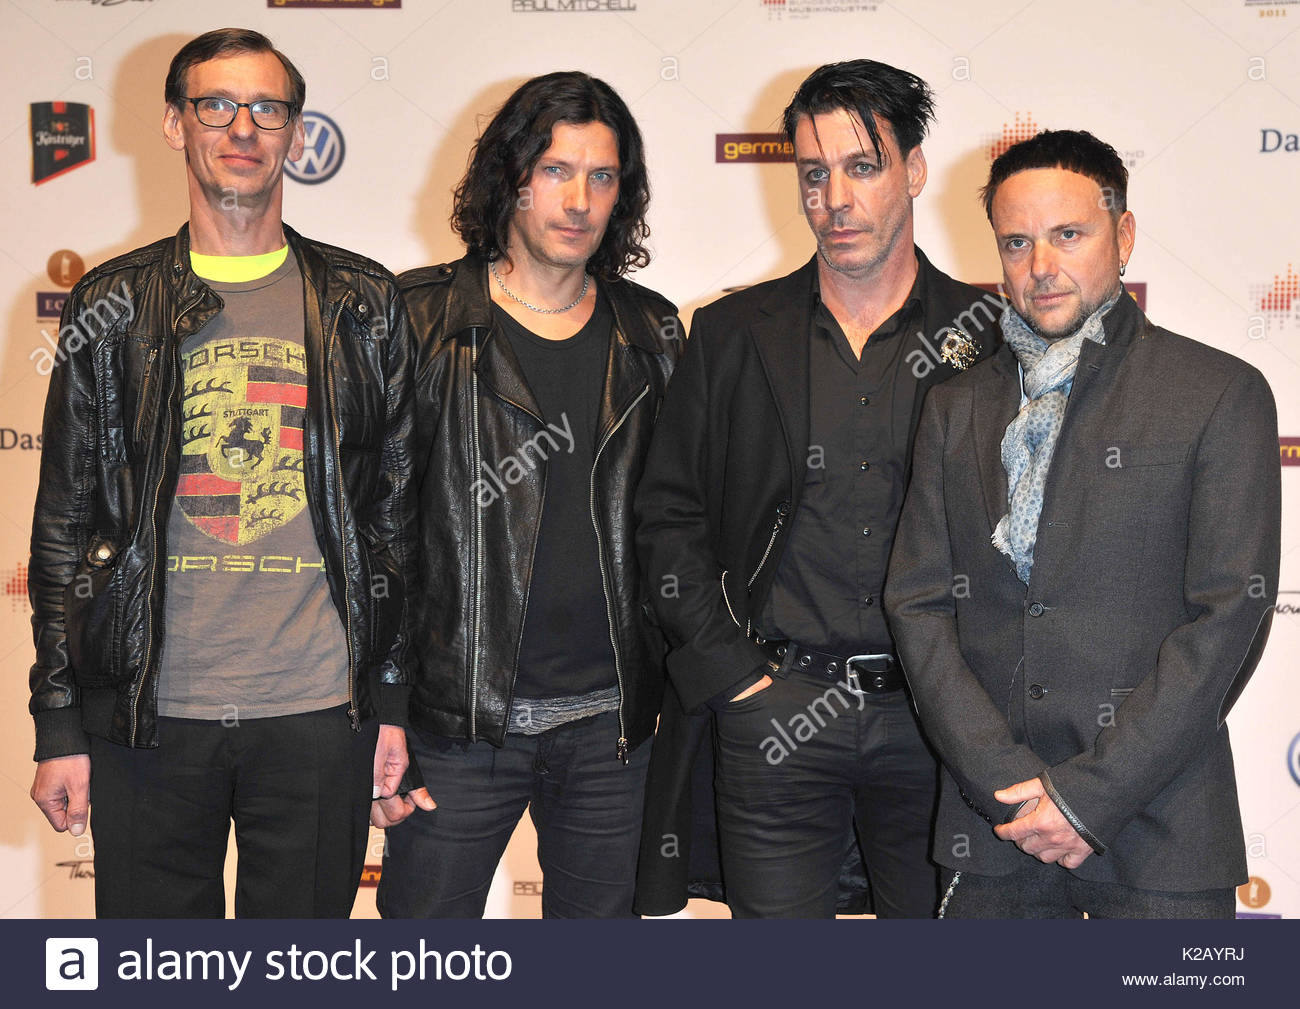 Rammstein stock photos rammstein stock images alamy rammstein international music celebrity arrivals for the echo 2011 at the palais am funkturm in m4hsunfo Choice Image